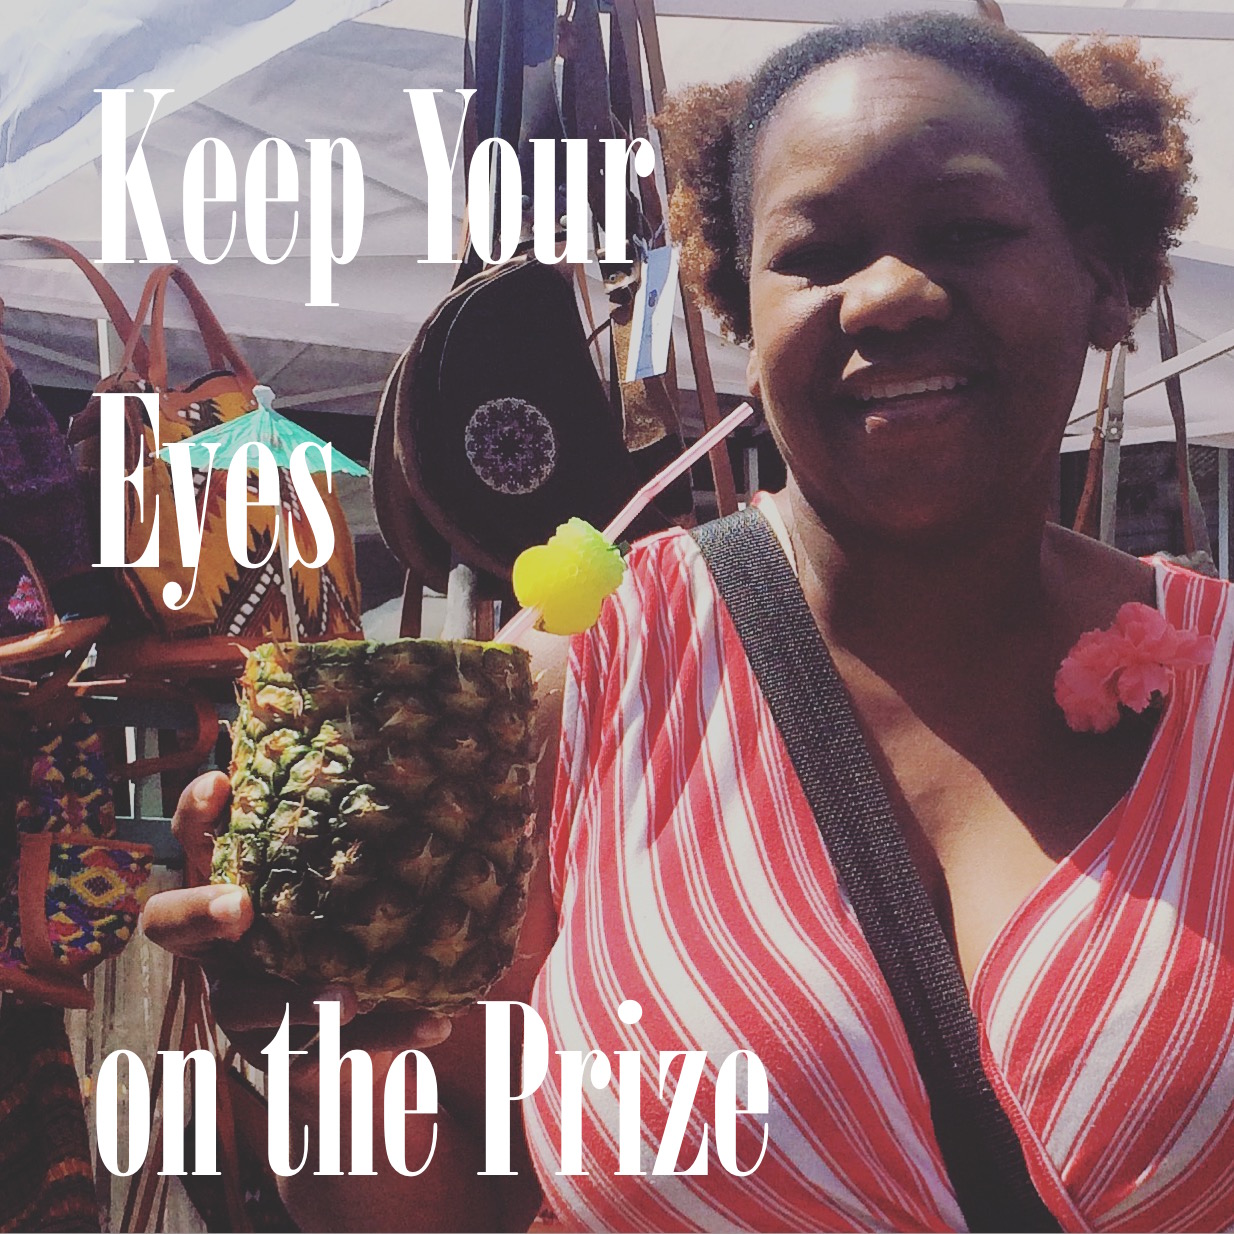 The FEMININE PRONOUN series # 16: Keep Your Eyes on the Prize